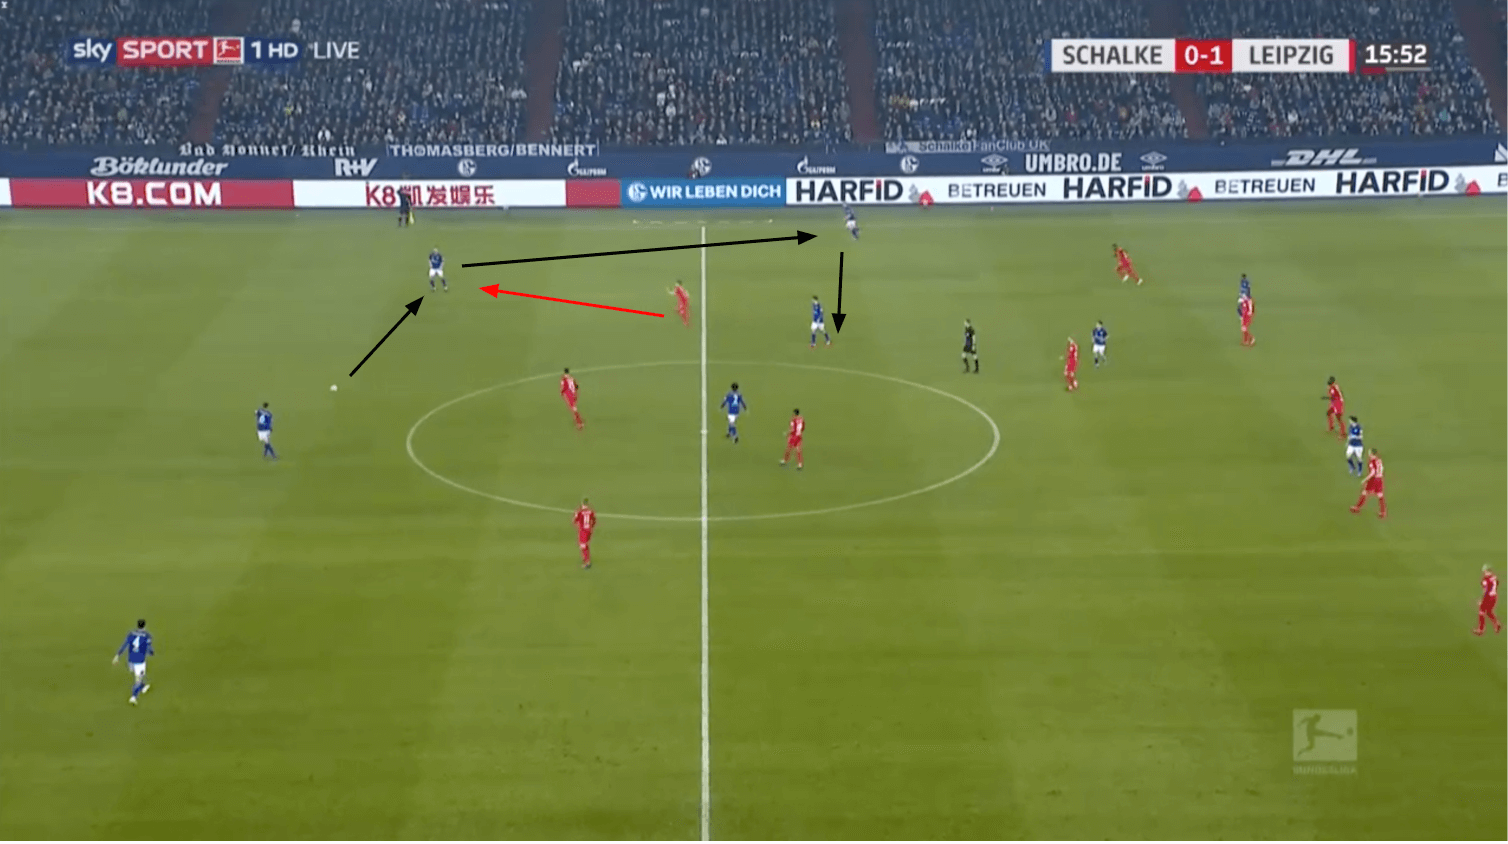 Bundesliga 2019/20: RB Leipzig vs Schalke 04 - tactical analysis tactics